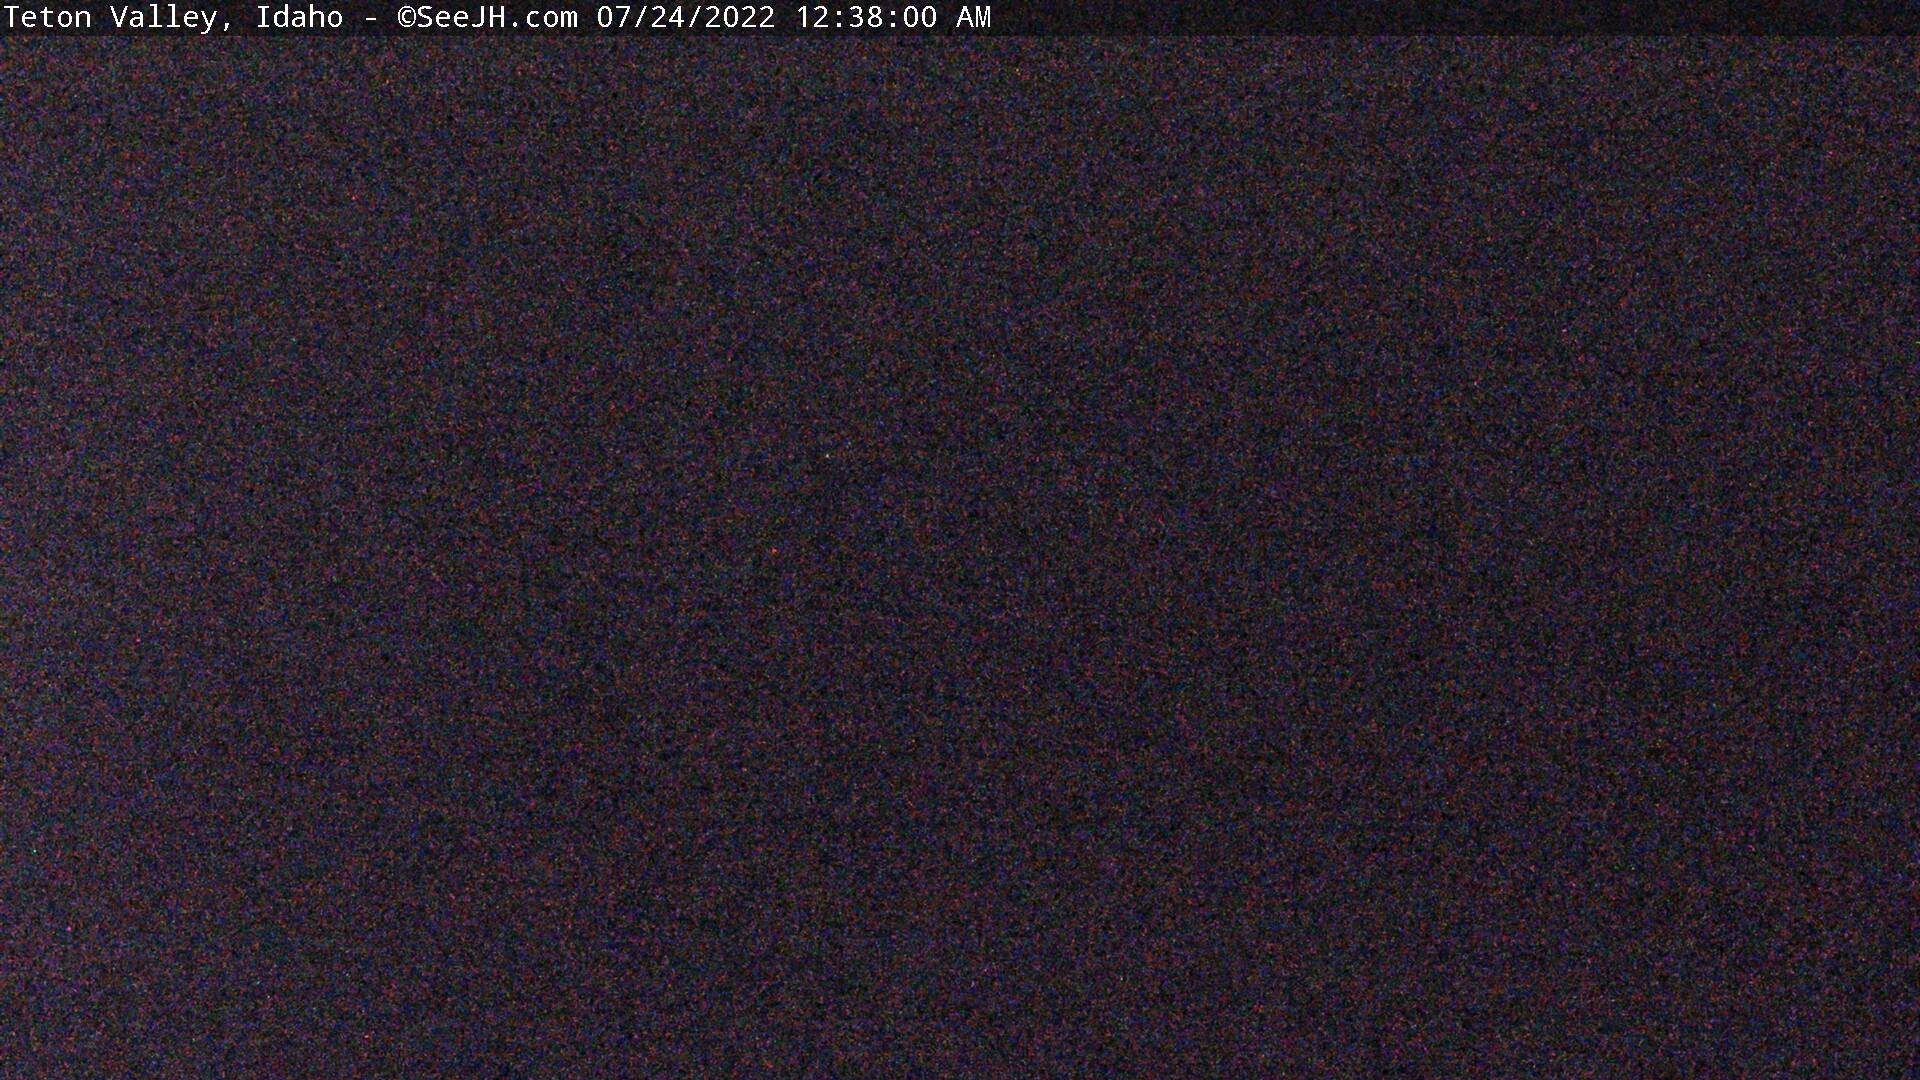 Grand Teton Webcam - Teton Valley, ID Image